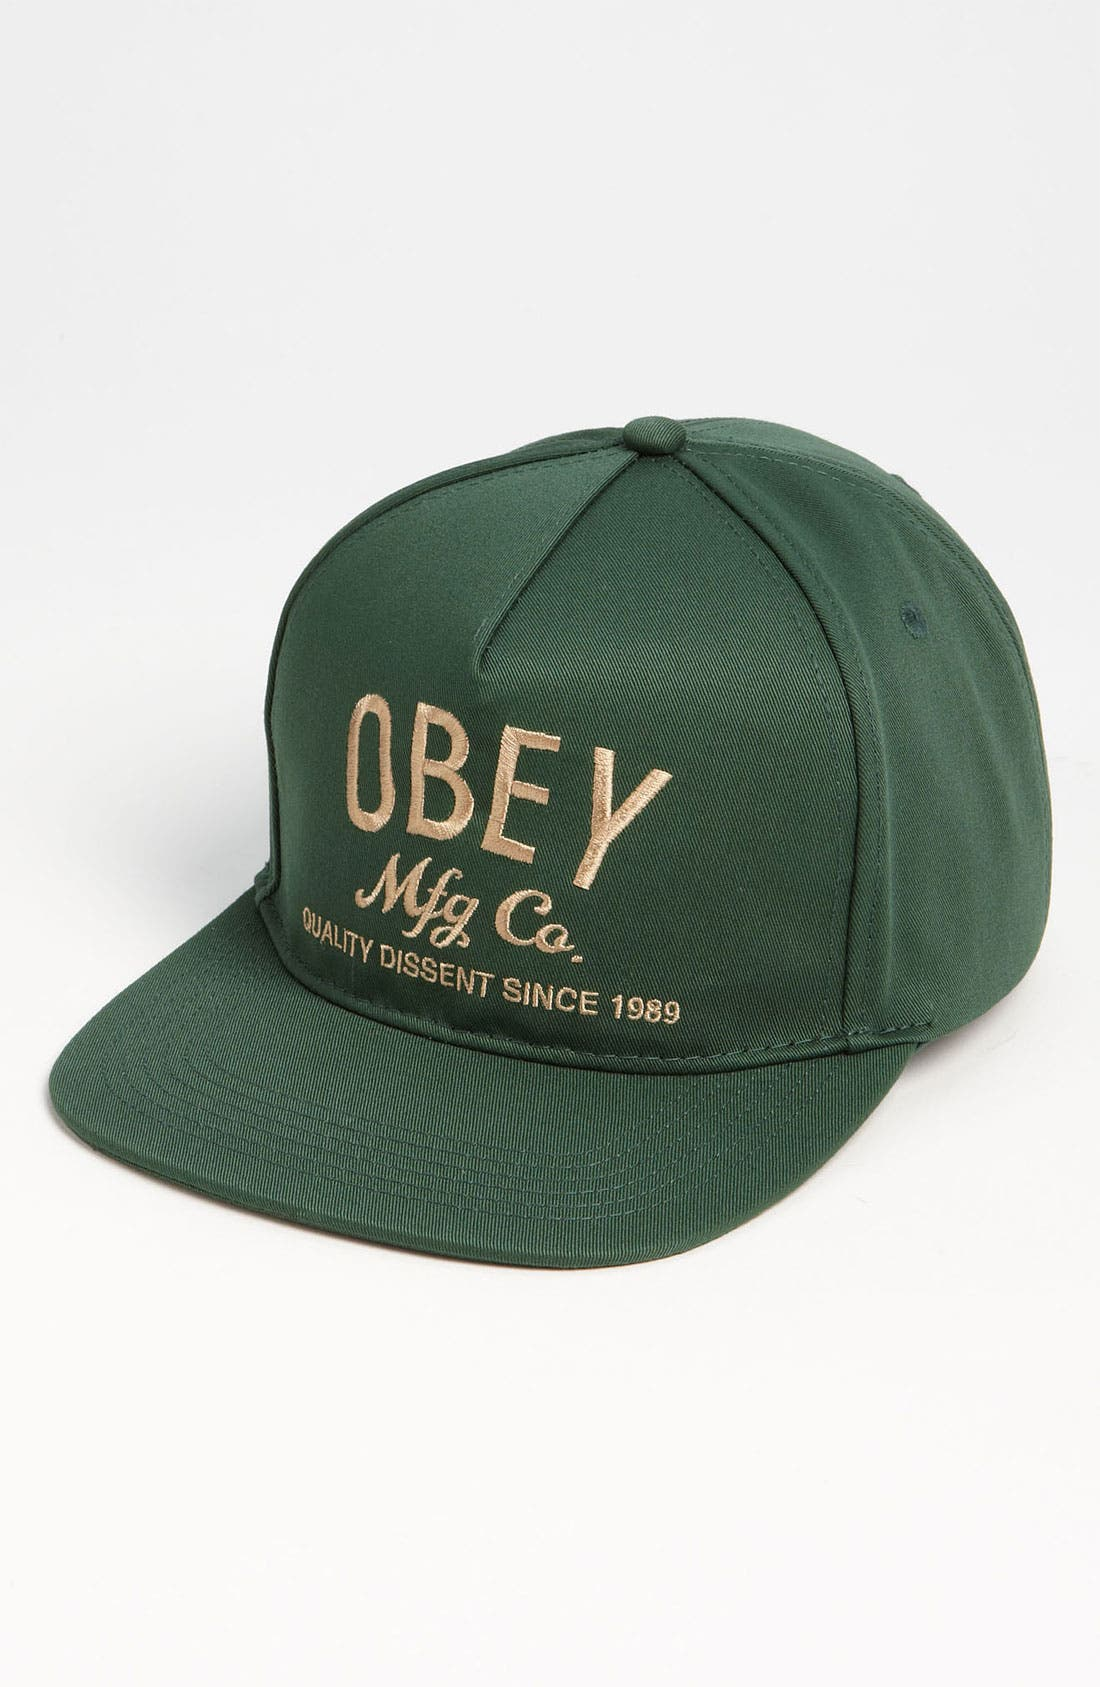 Alternate Image 1 Selected - Obey 'Mfg Co.' Snapback Cap